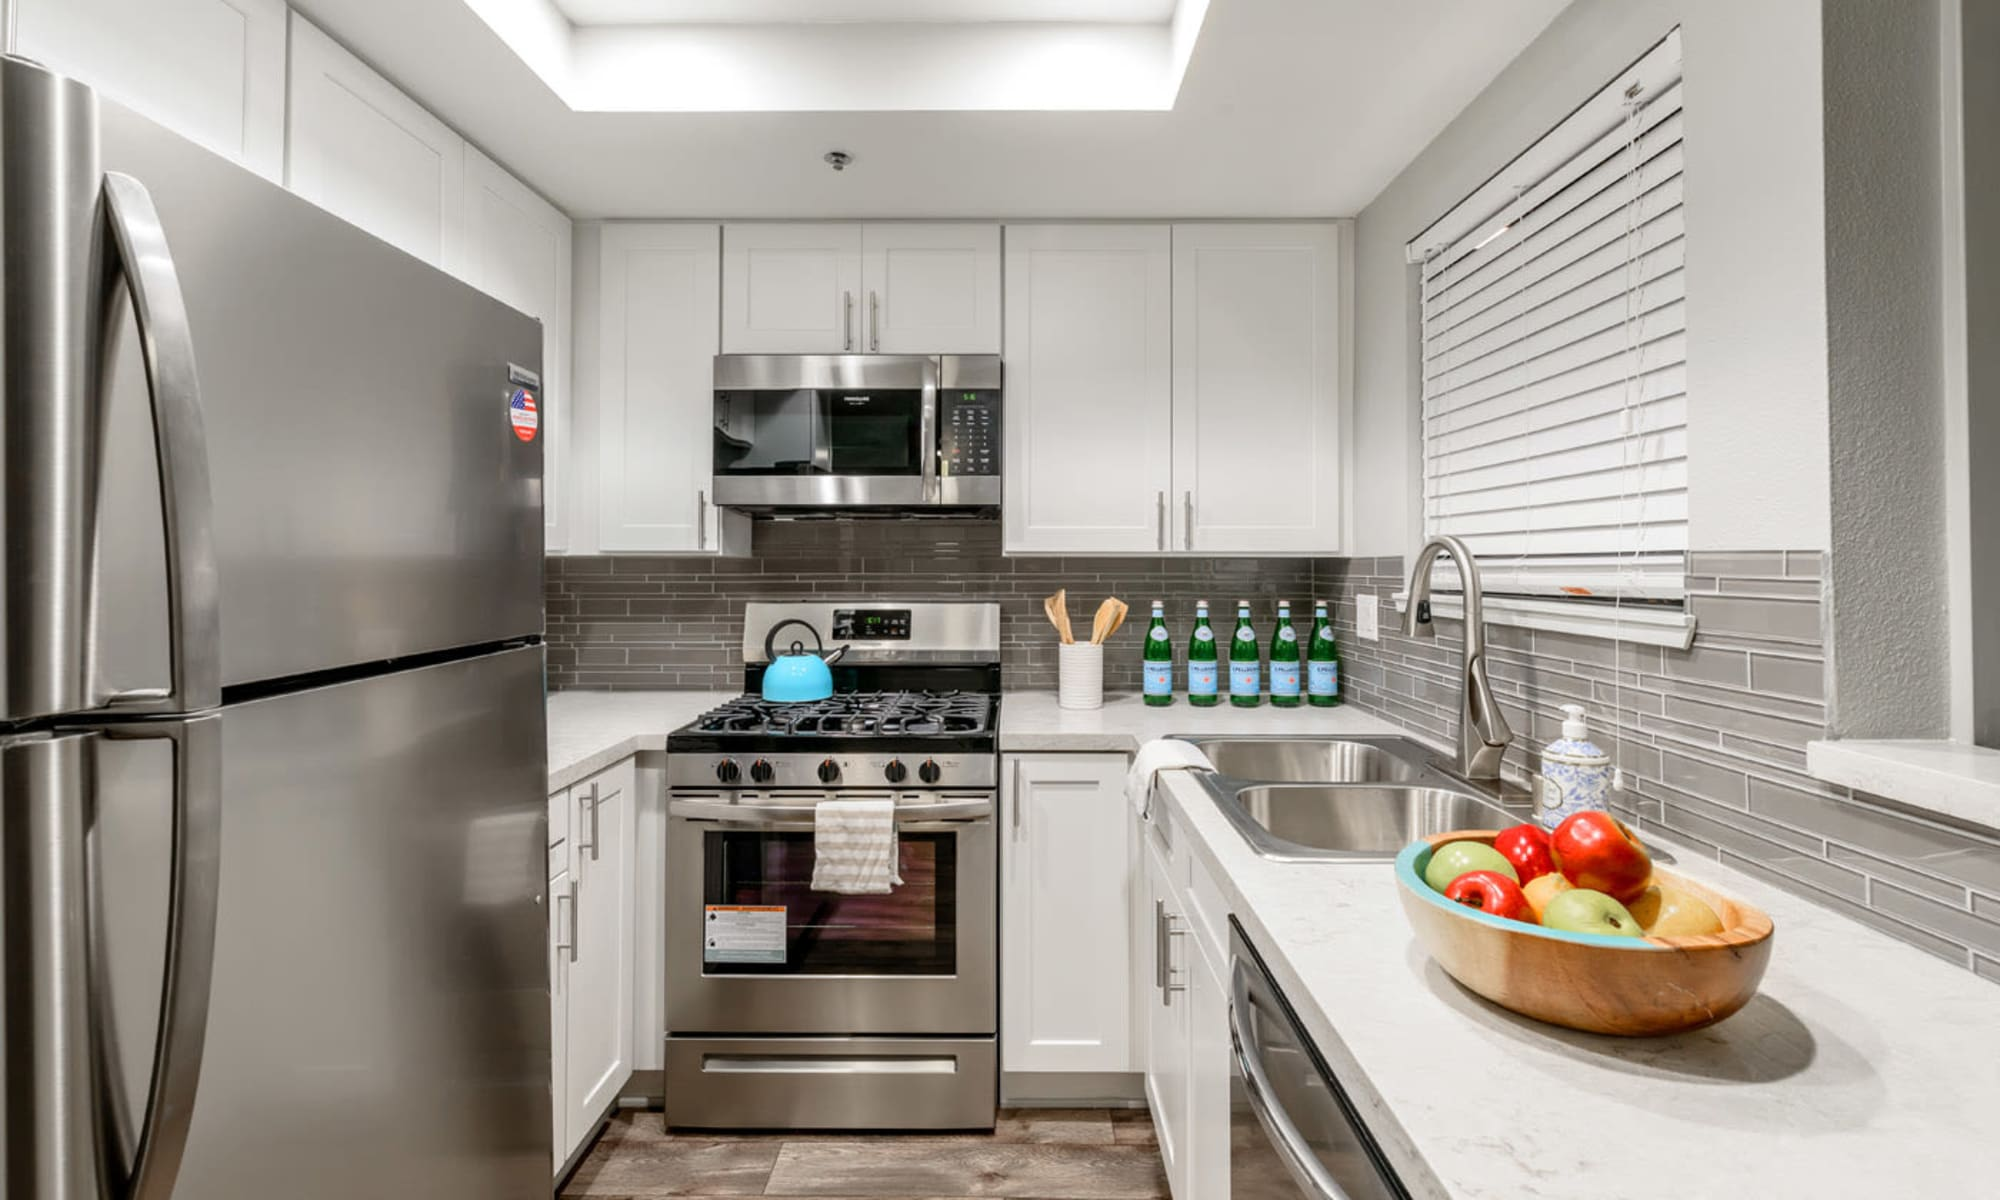 Sleek and modern kitchen with a yummy bowl of fruit on the counter for a quick snack at Sendero Huntington Beach in Huntington Beach, California